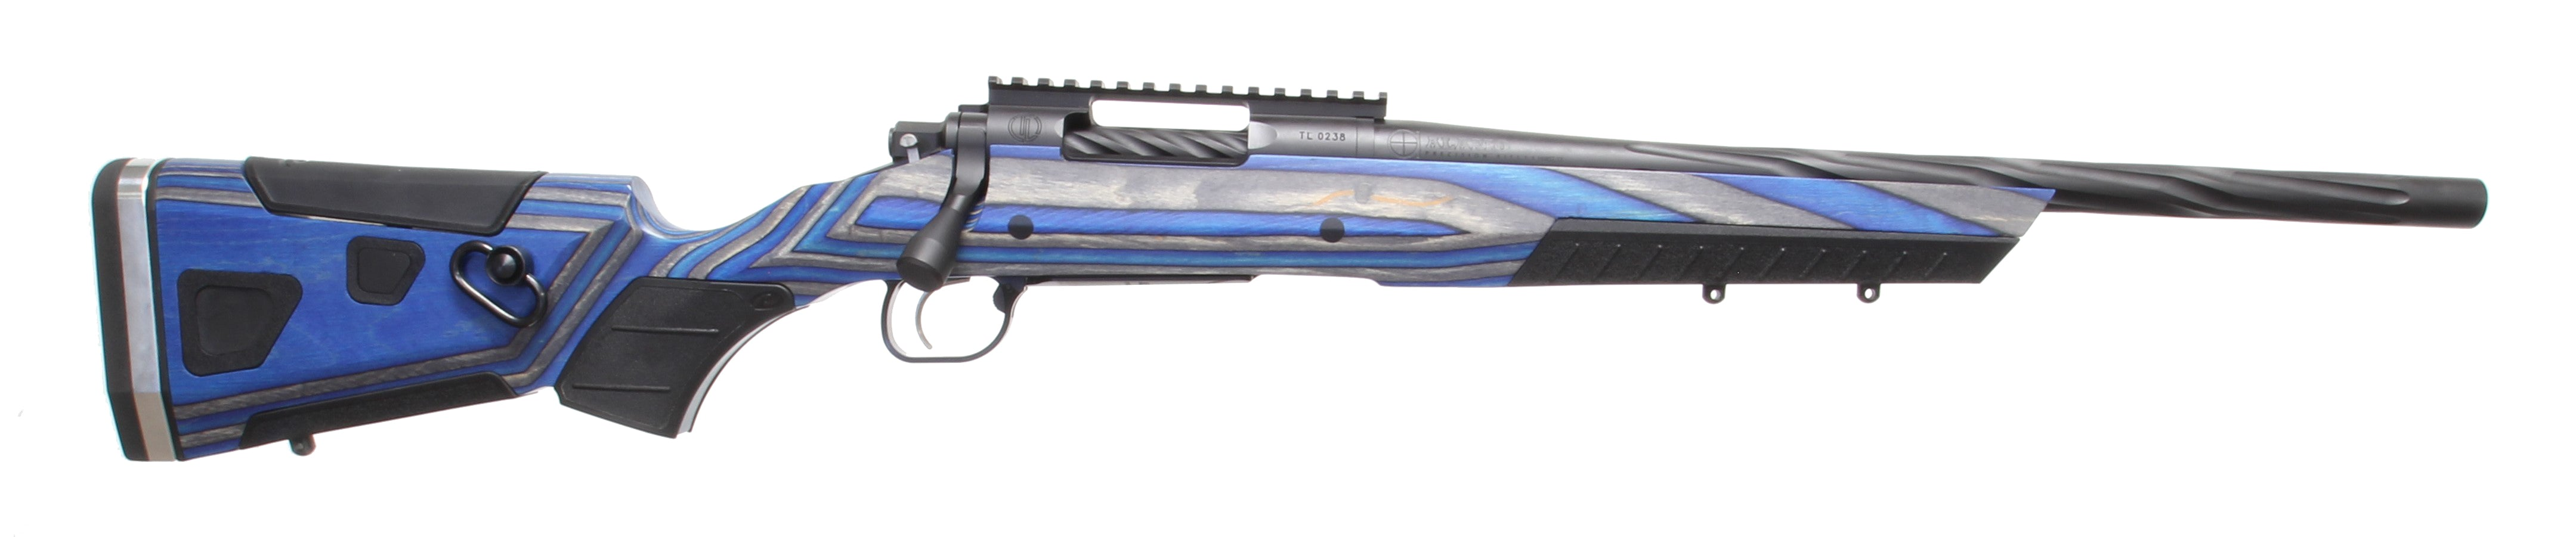 APR Maverick Youth 6.5 Creedmoor